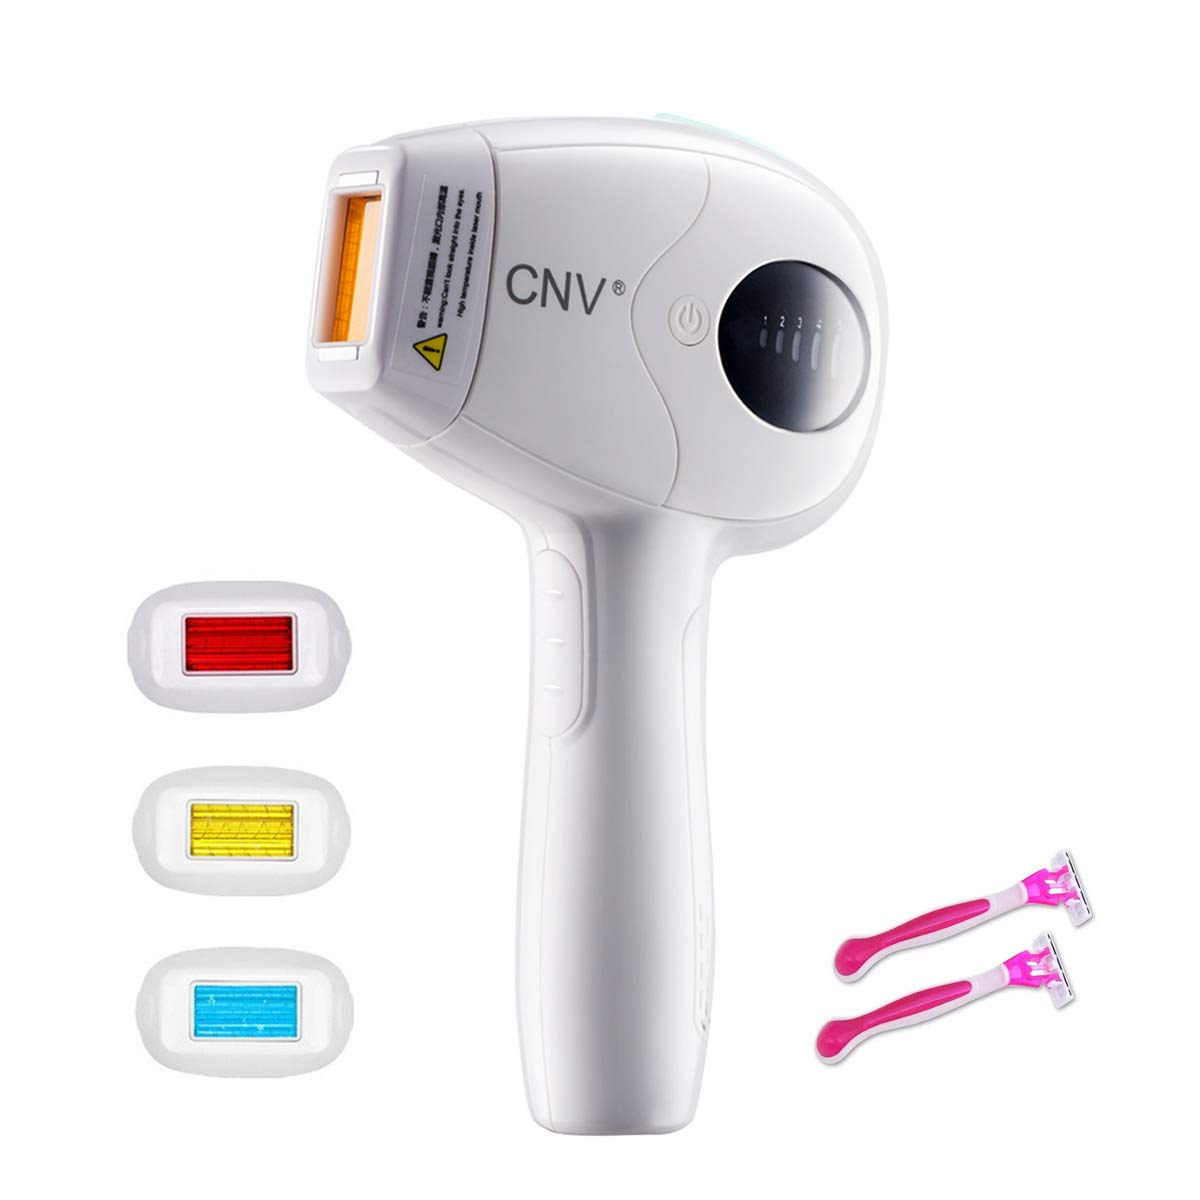 New Permanent Hair Removal New WPL Device for Women And Men Whole Body Home Use (Hair Removal laser Machine)